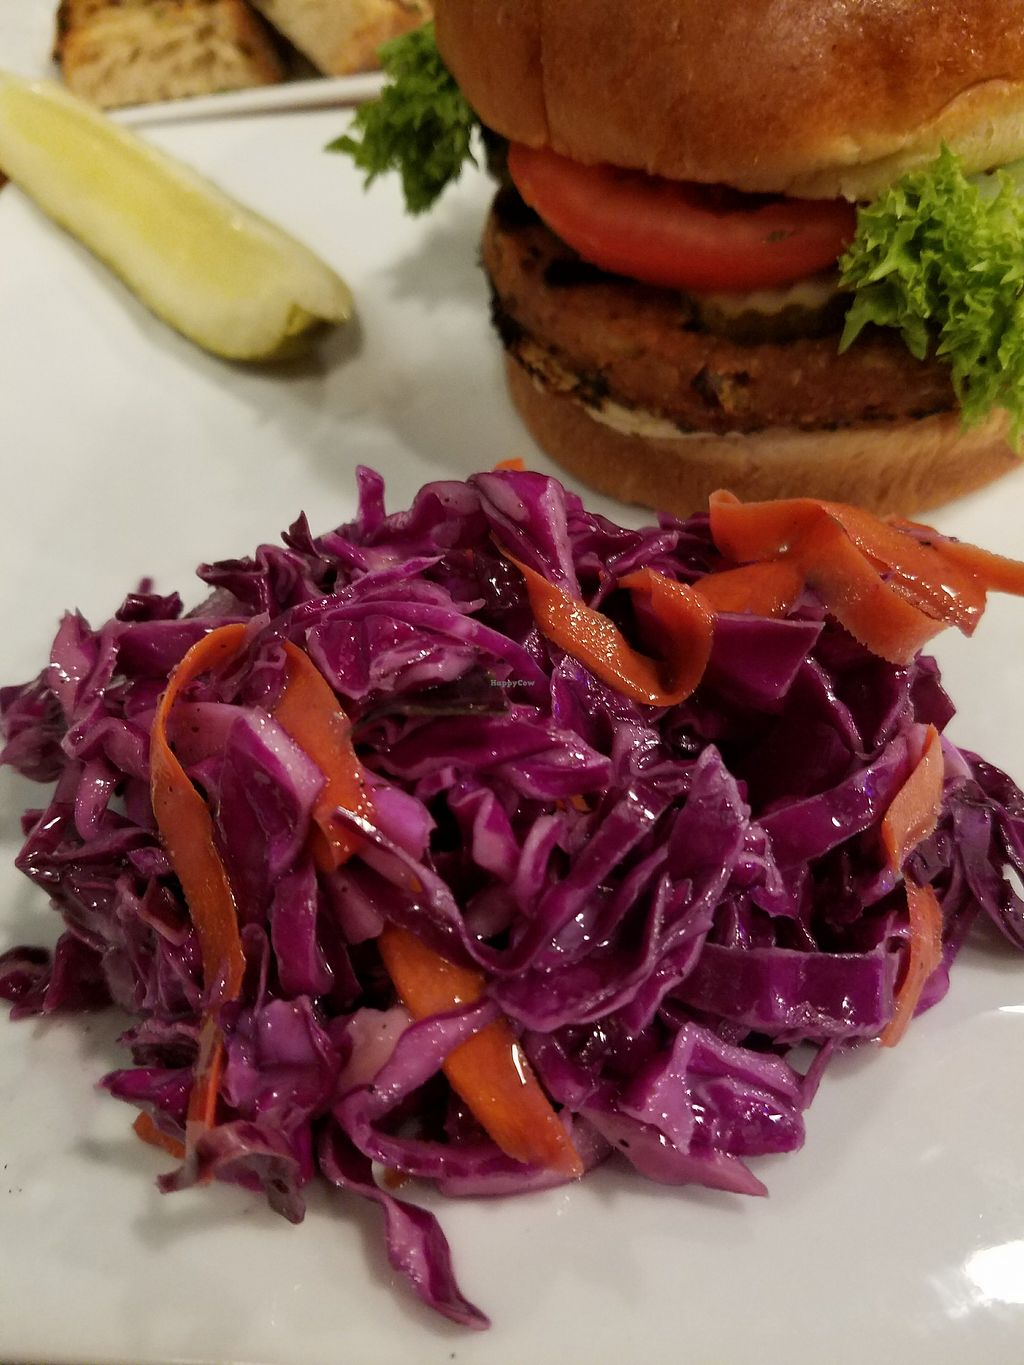 """Photo of Feed the World Cafe  by <a href=""""/members/profile/MerryRose"""">MerryRose</a> <br/>vegan blackberry cabbage/carrot slaw <br/> December 12, 2017  - <a href='/contact/abuse/image/107152/335080'>Report</a>"""